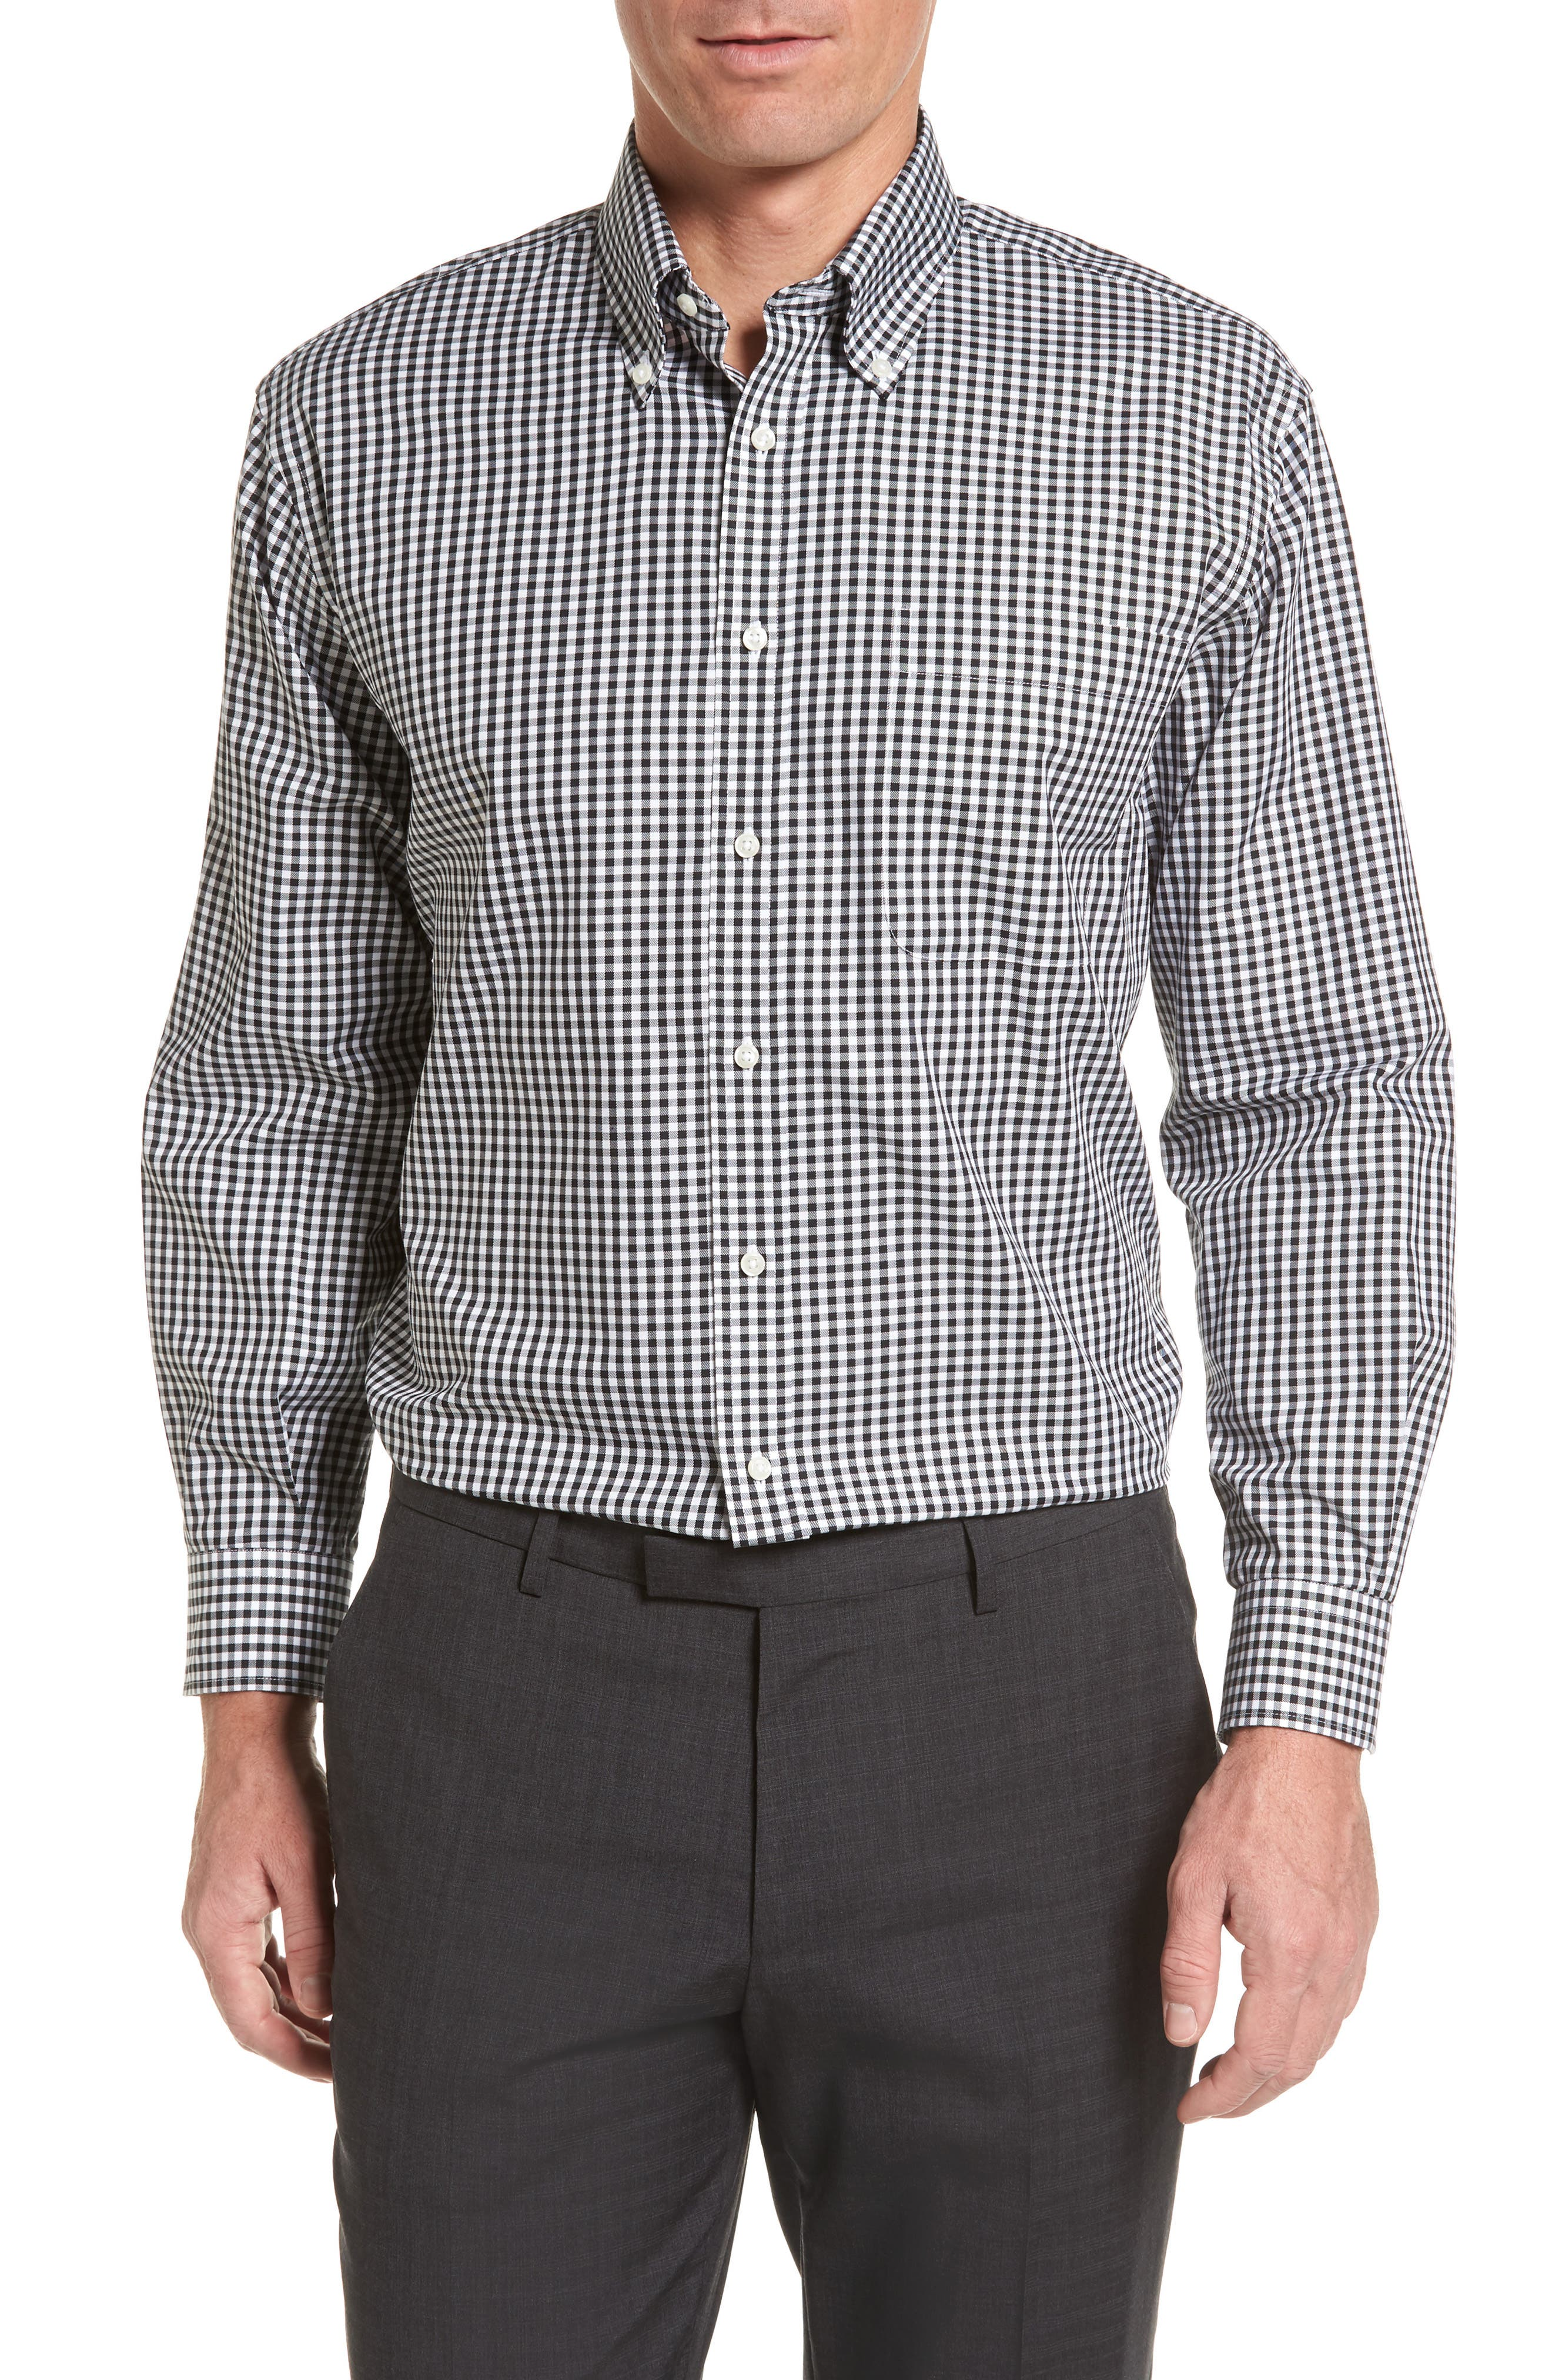 Classic Fit Non-Iron Gingham Dress Shirt,                             Main thumbnail 1, color,                             BLACK ROCK